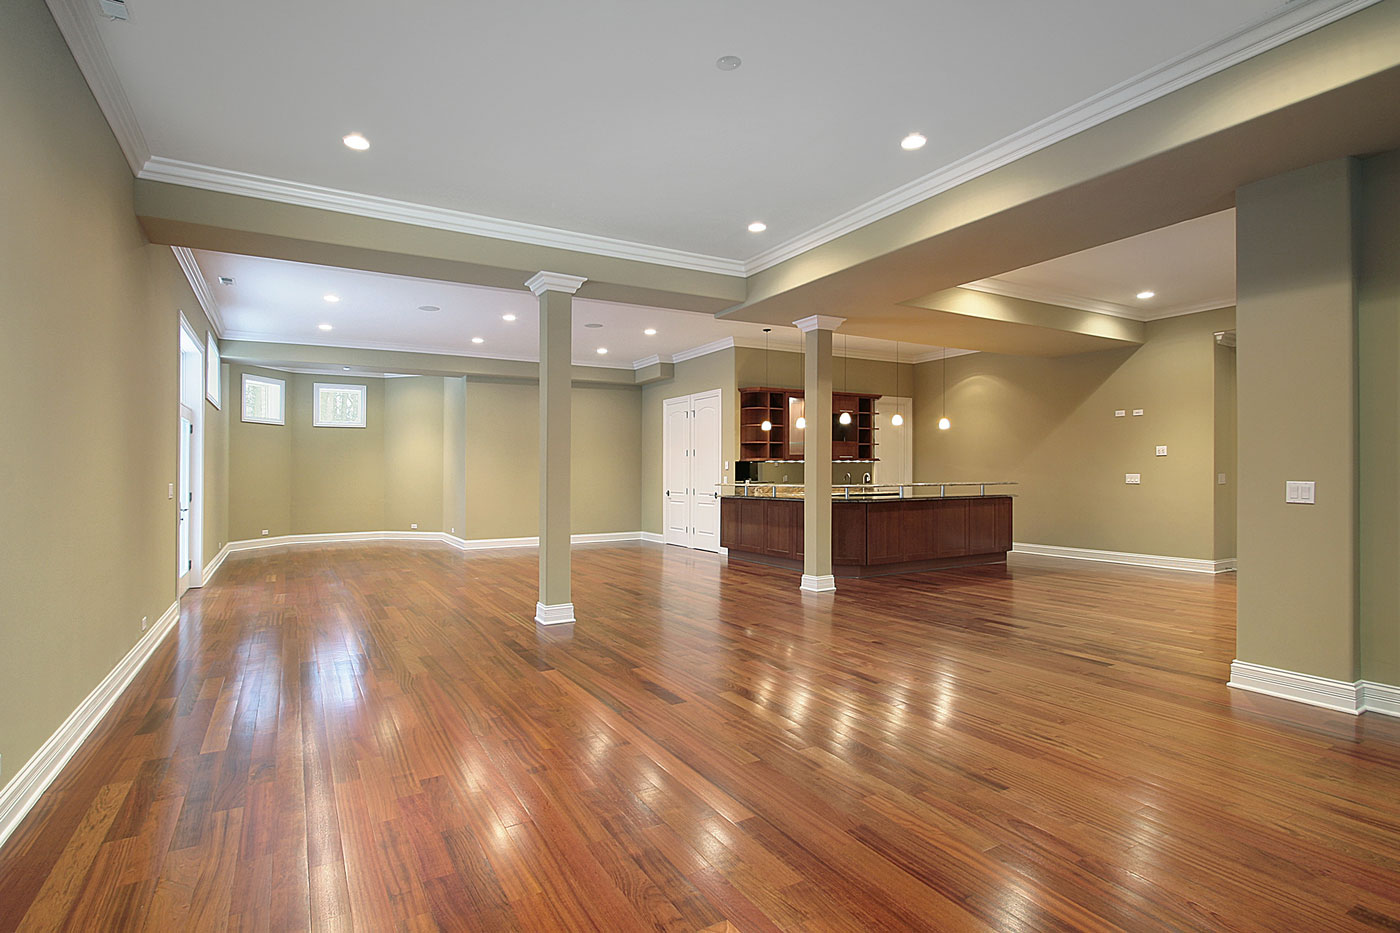 Basement Finishing & Remodeling - Twin Cities Metro